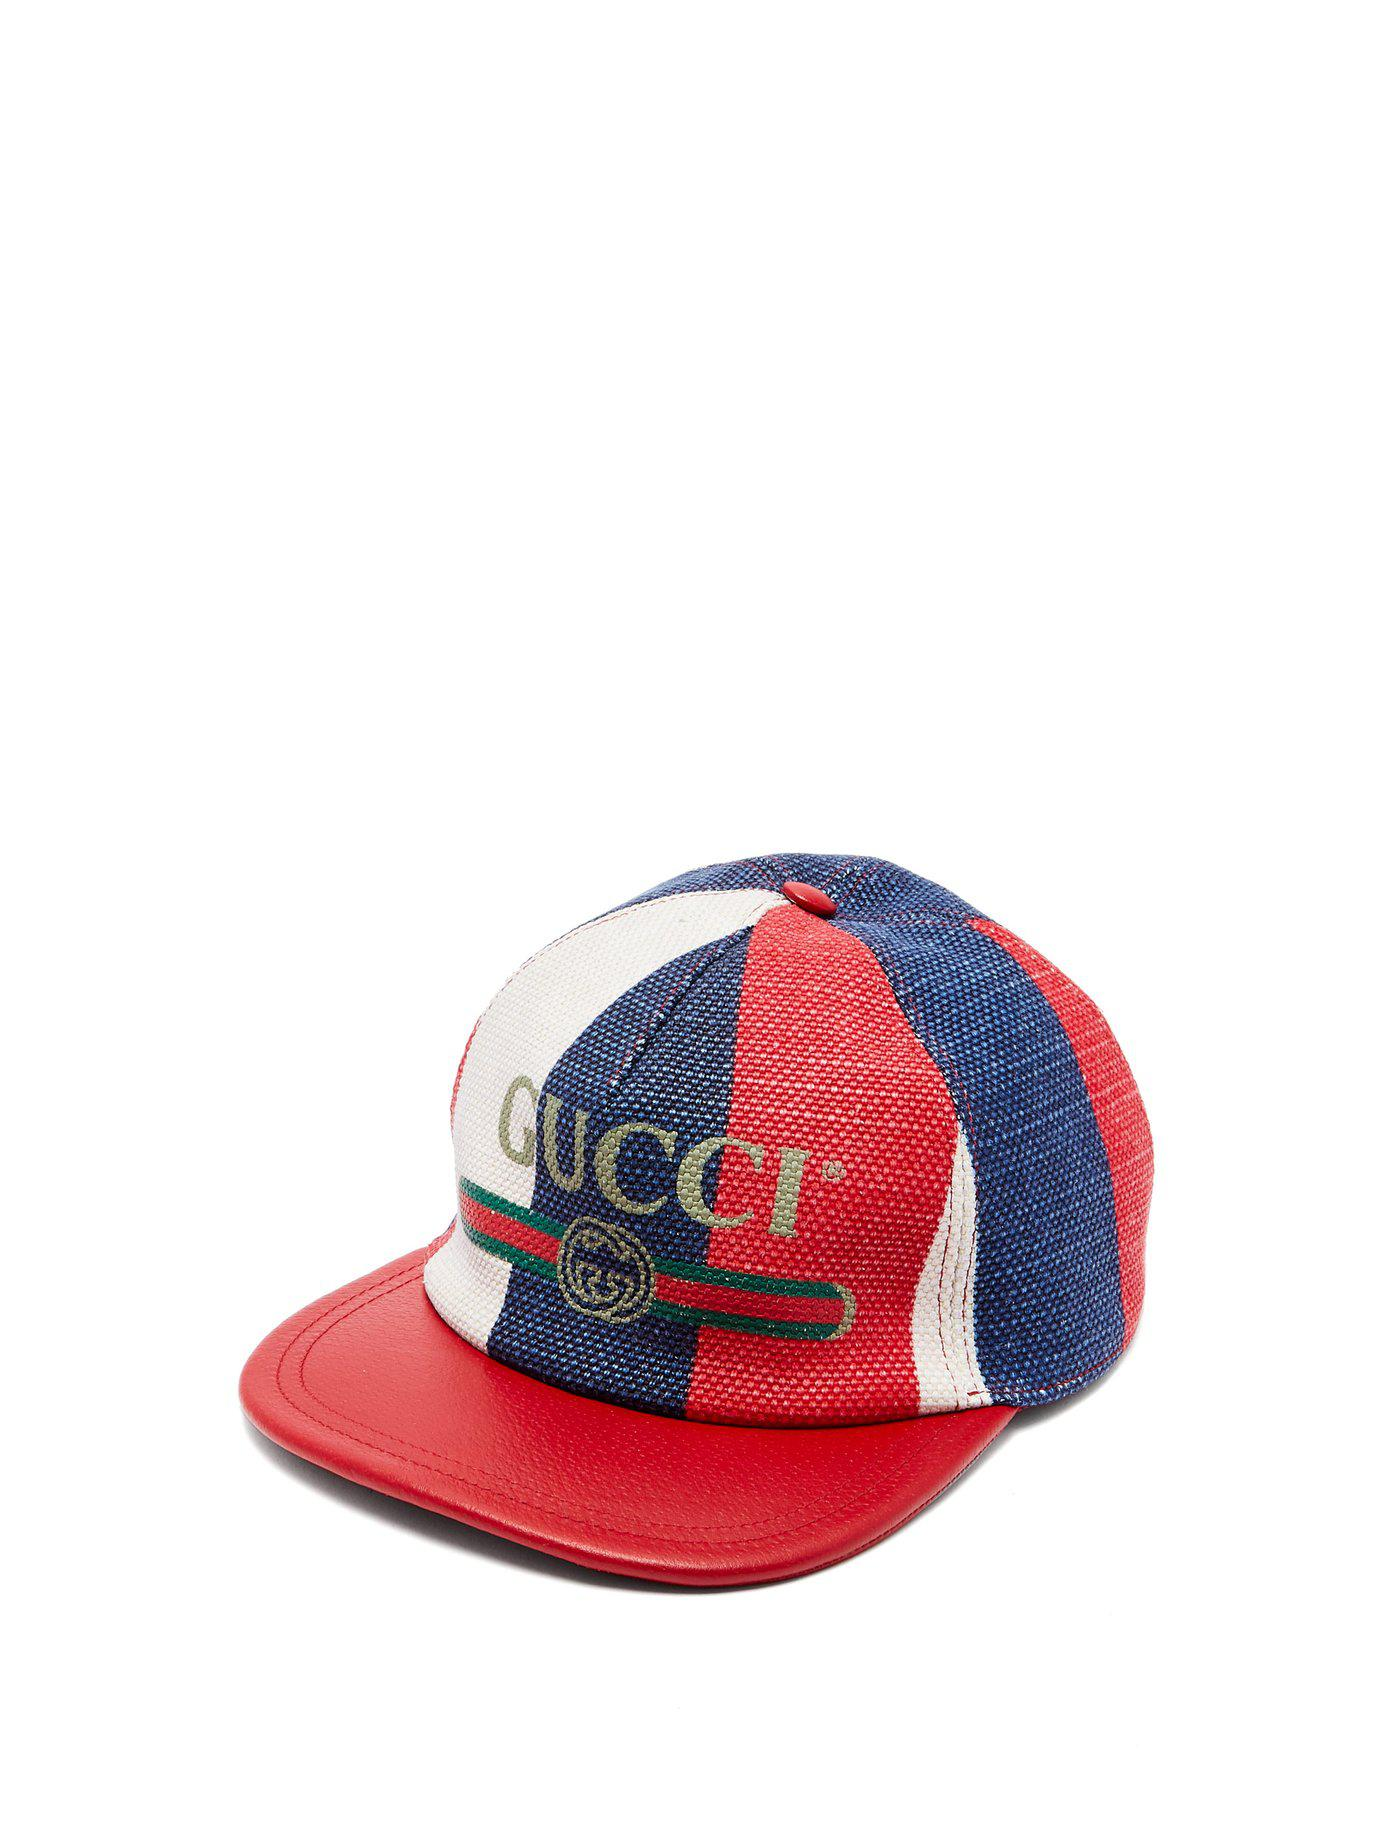 39e251b4134 Lyst - Gucci Logo Embellished Linen Baseball Cap for Men - Save 39%